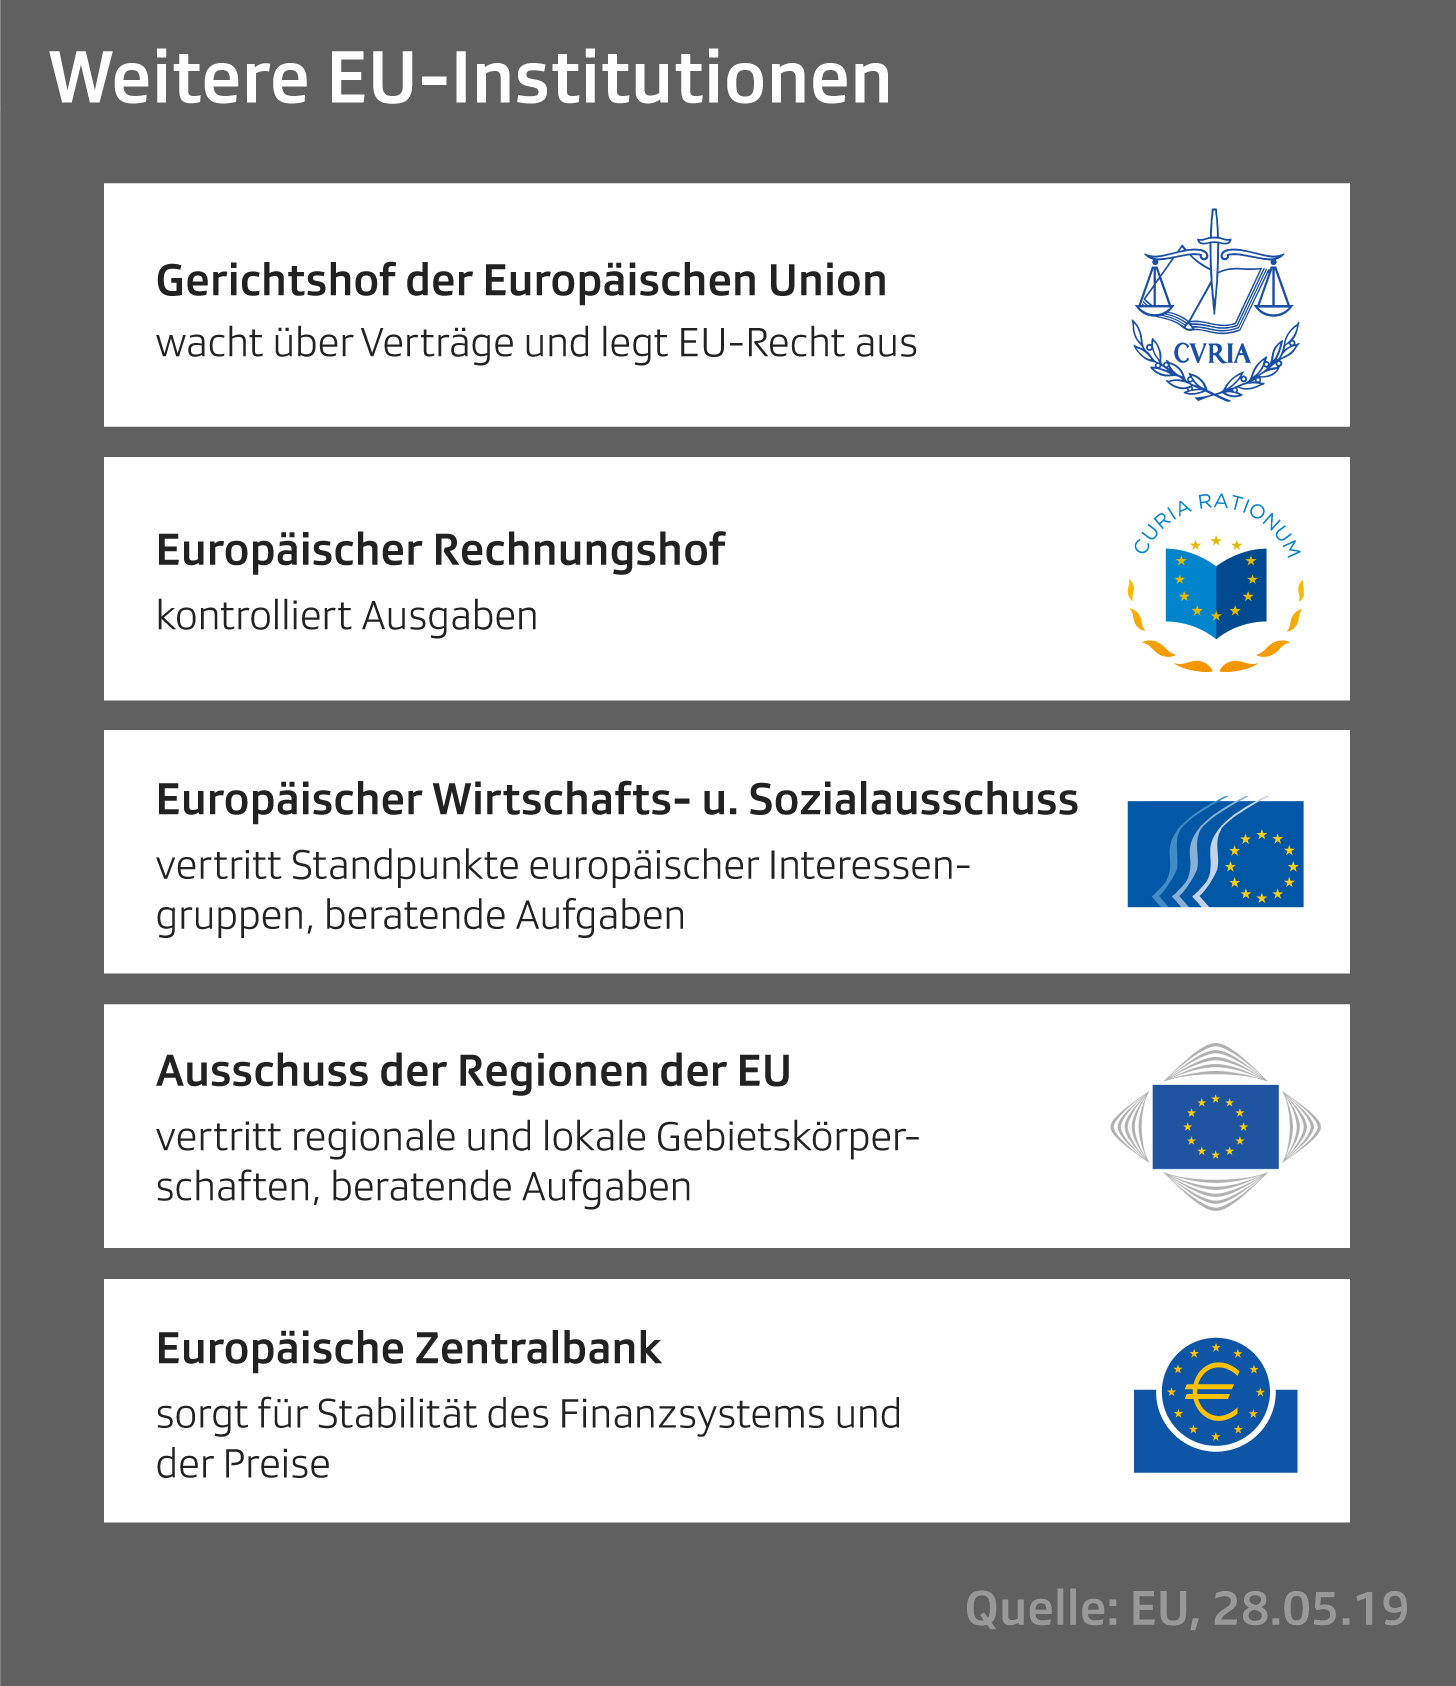 Grafik mit Institutionen der EU